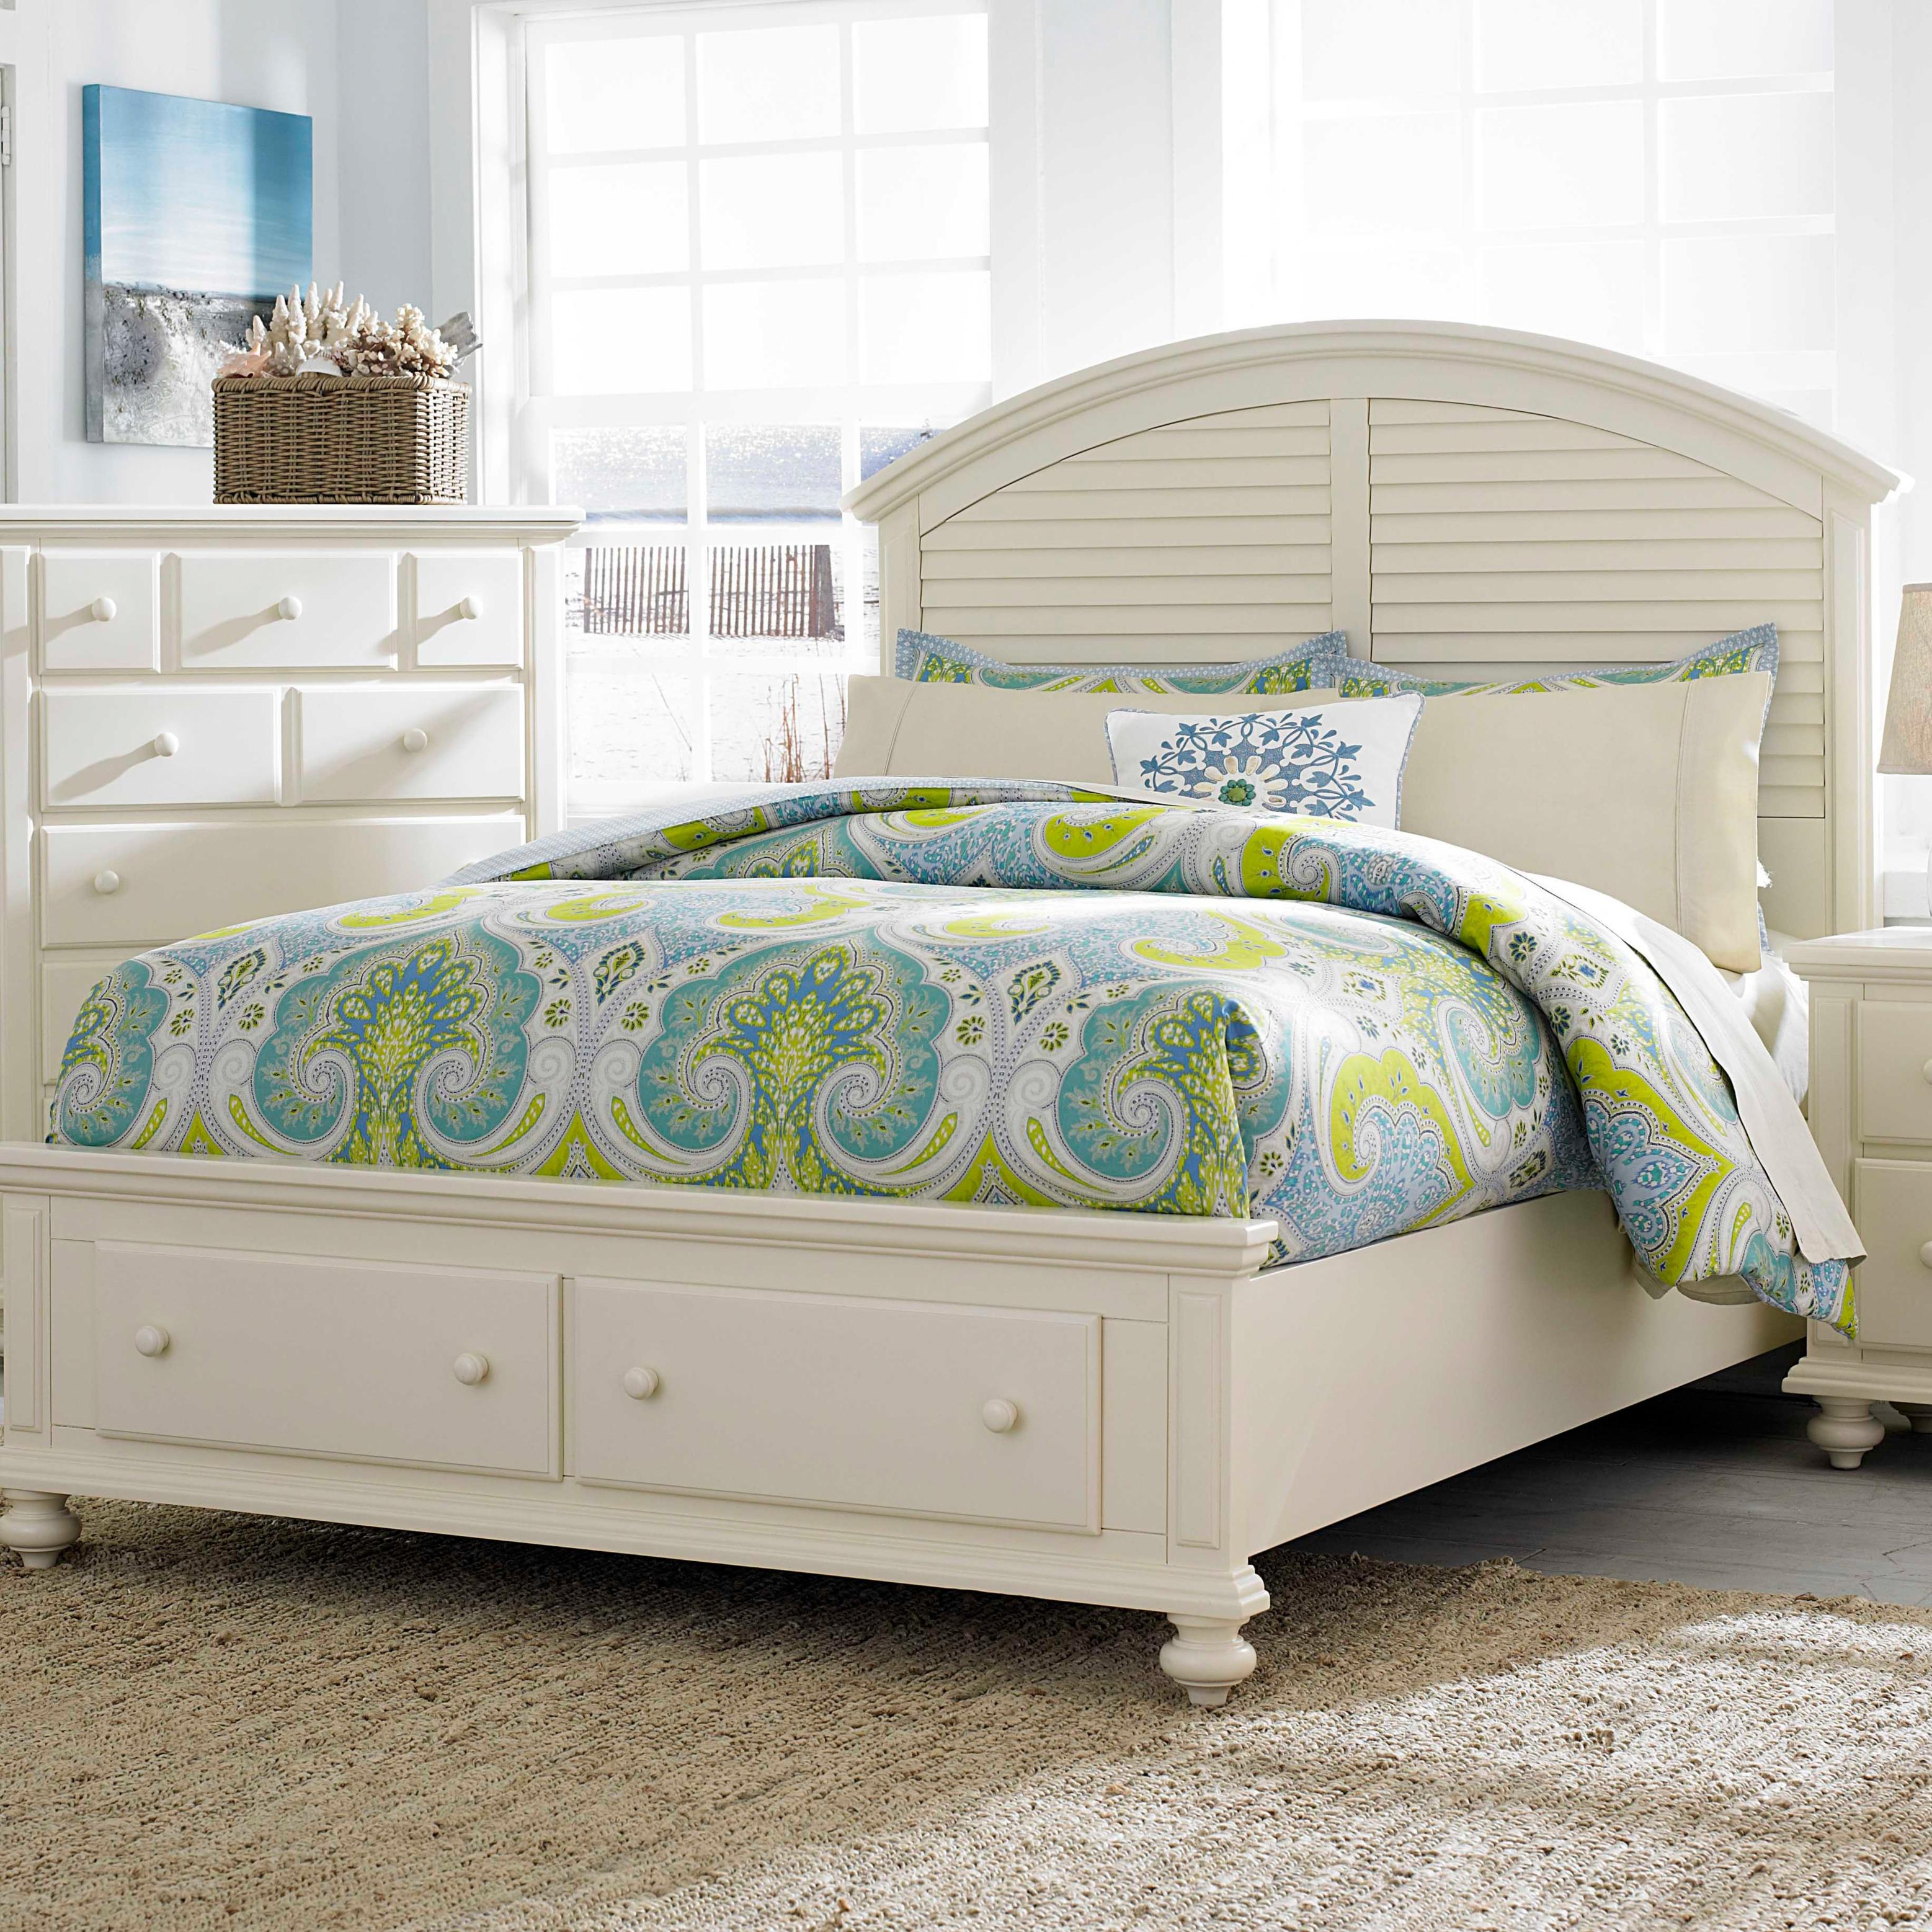 Broyhill Furniture Seabrooke Cal King Panel Bed with Storage Footboard - Item Number: 4471-254+257+465